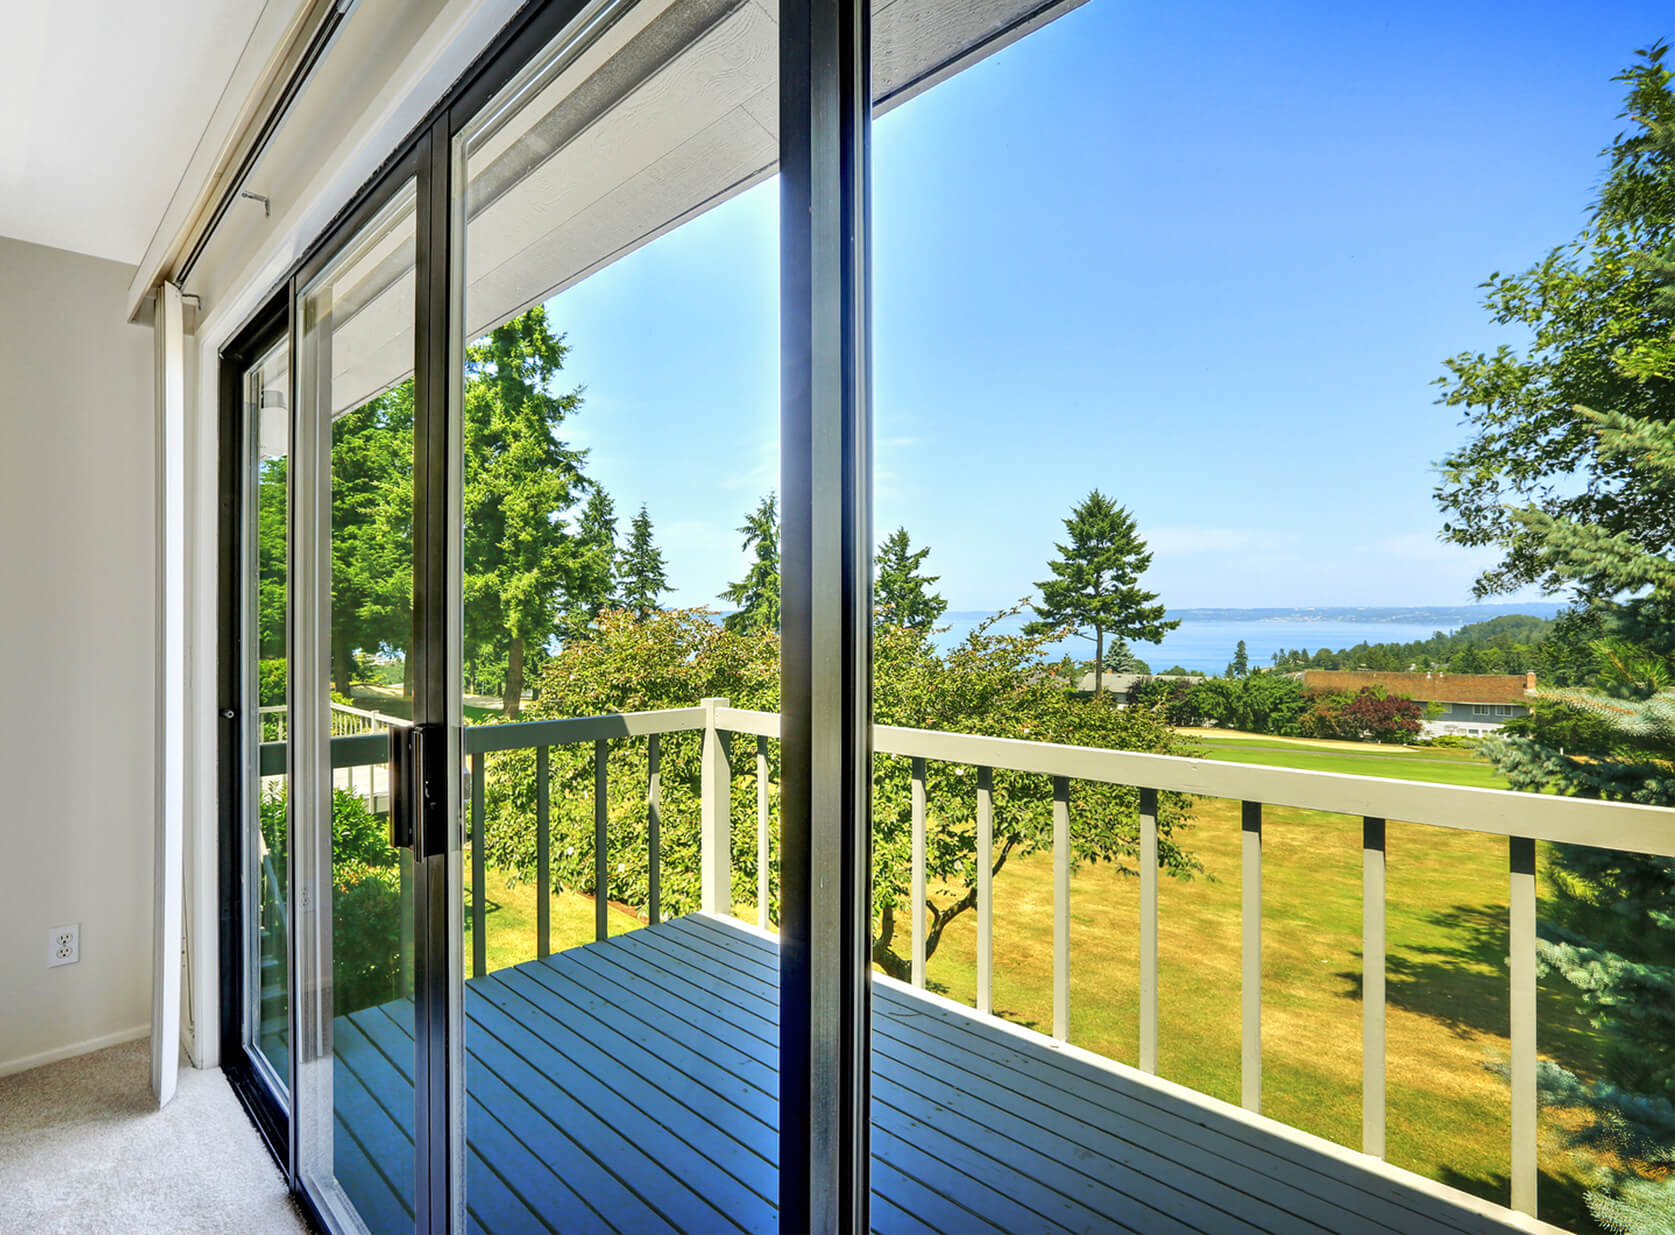 Sliding Vs French Patio Doors What To Choose Interior Design